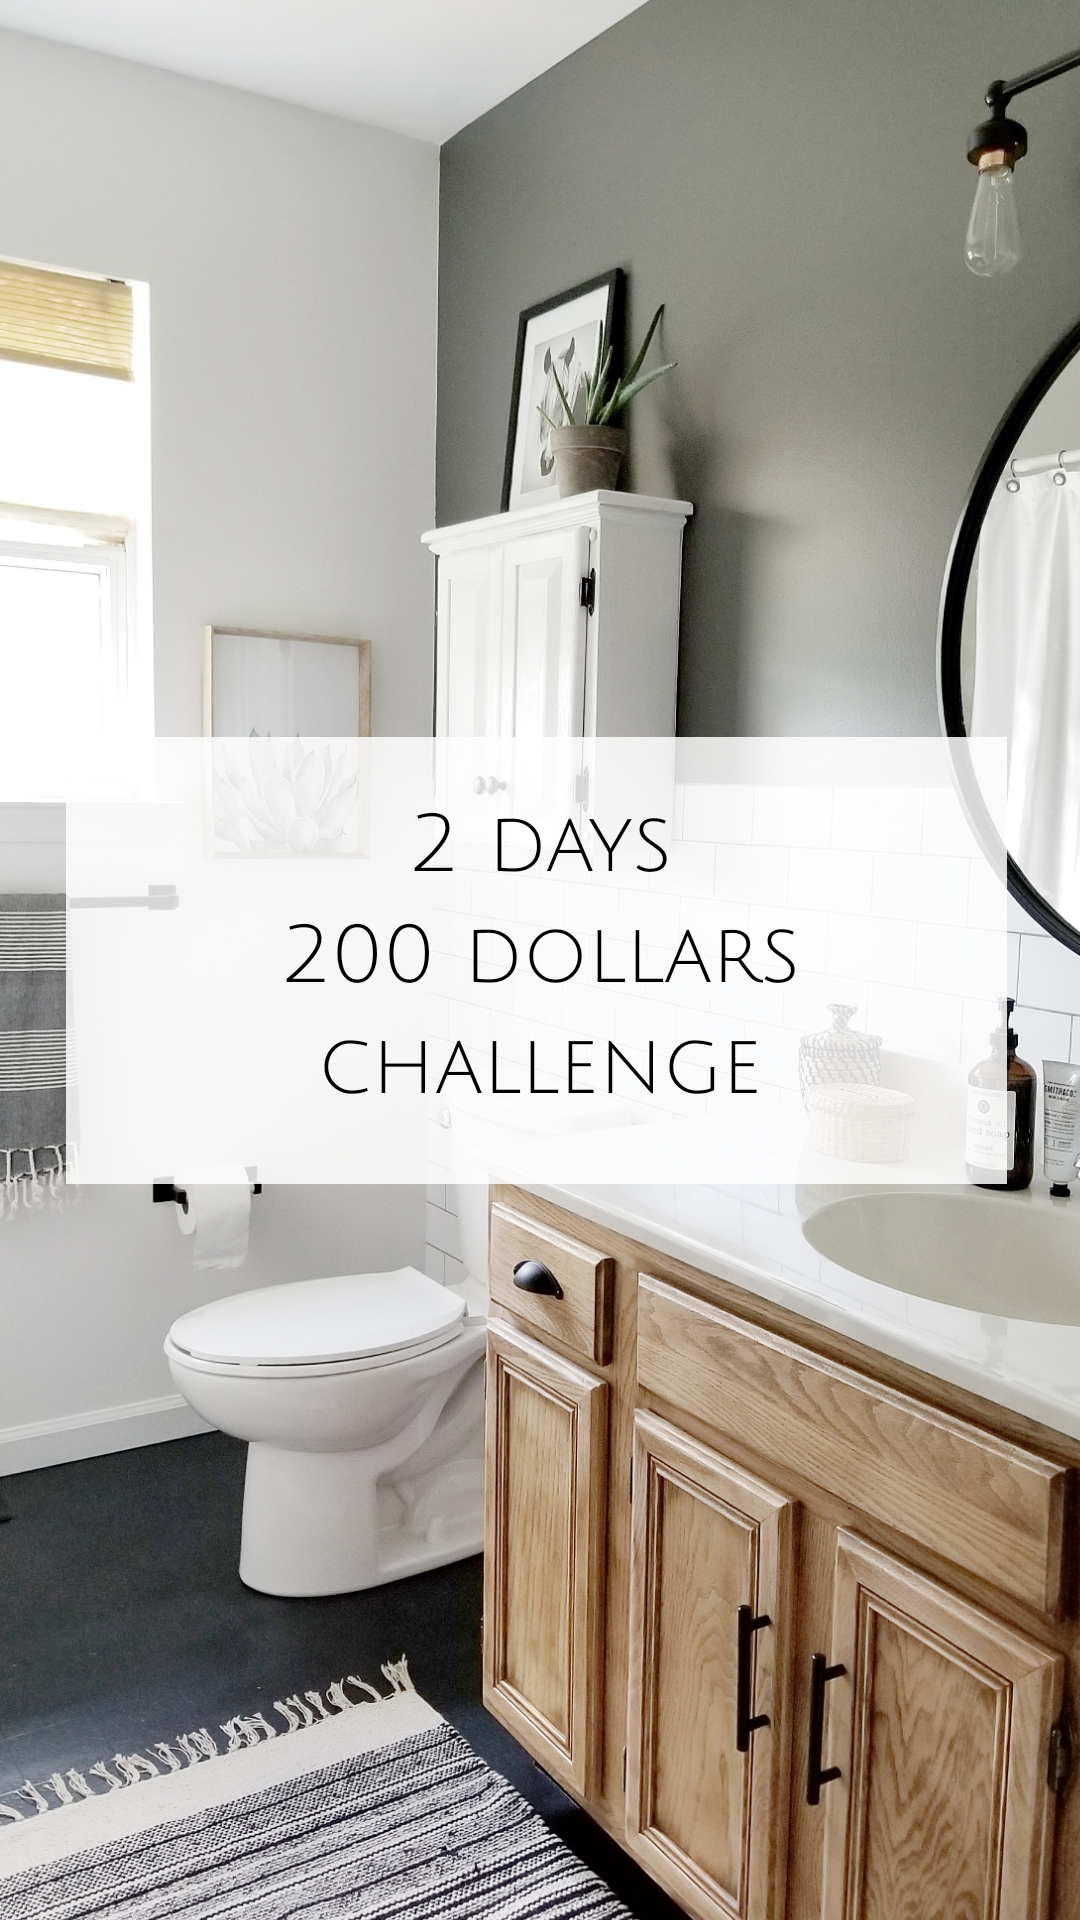 My 2 Days 200 Dollars Challenge Showit Blog In 2020 Diy